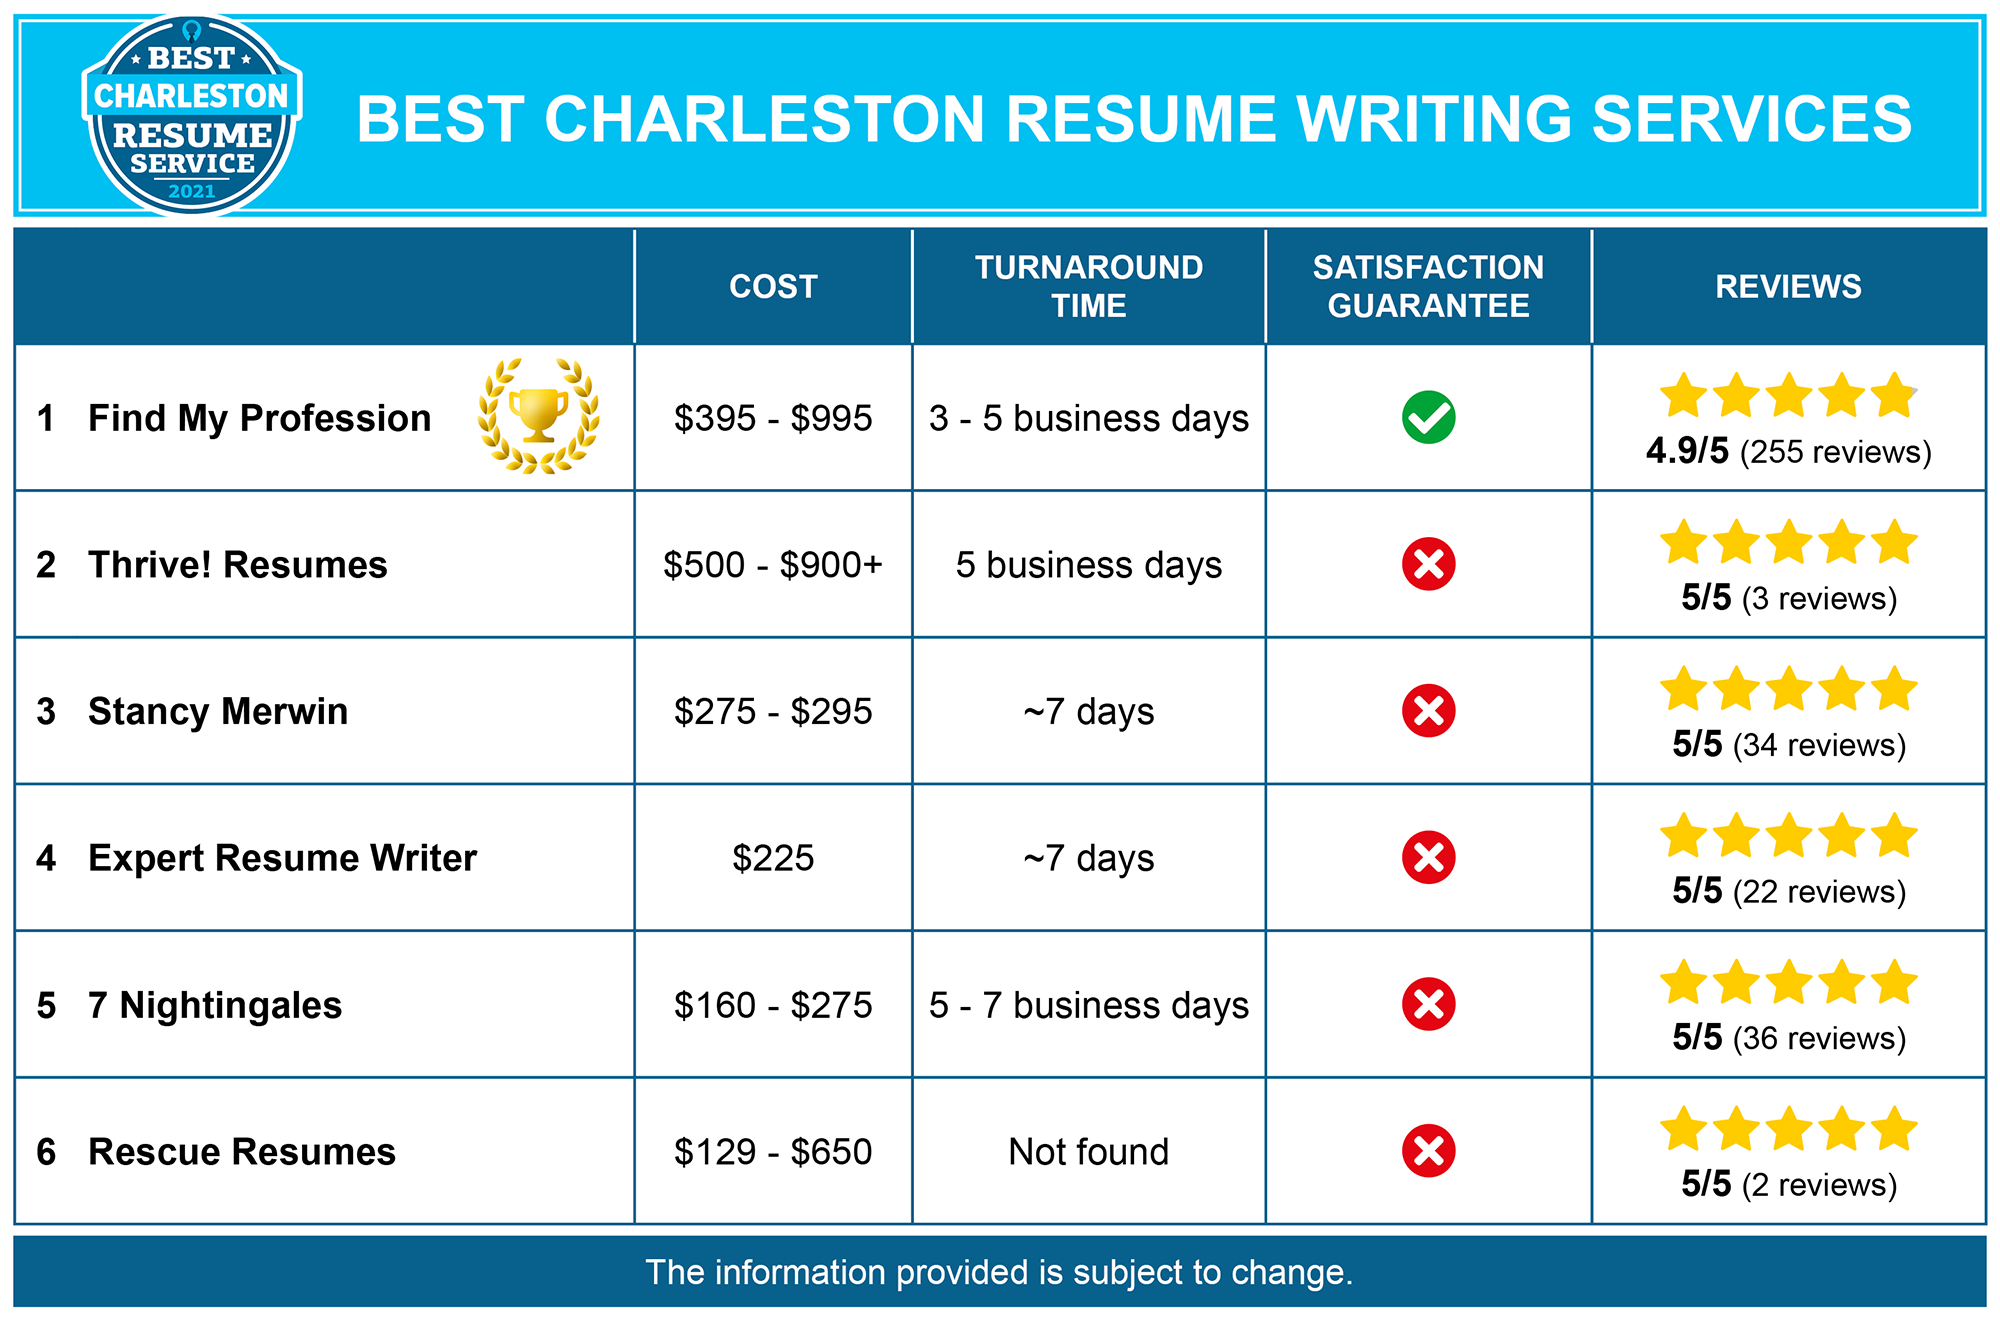 6 Best Resume Writing Services in Charleston, SC